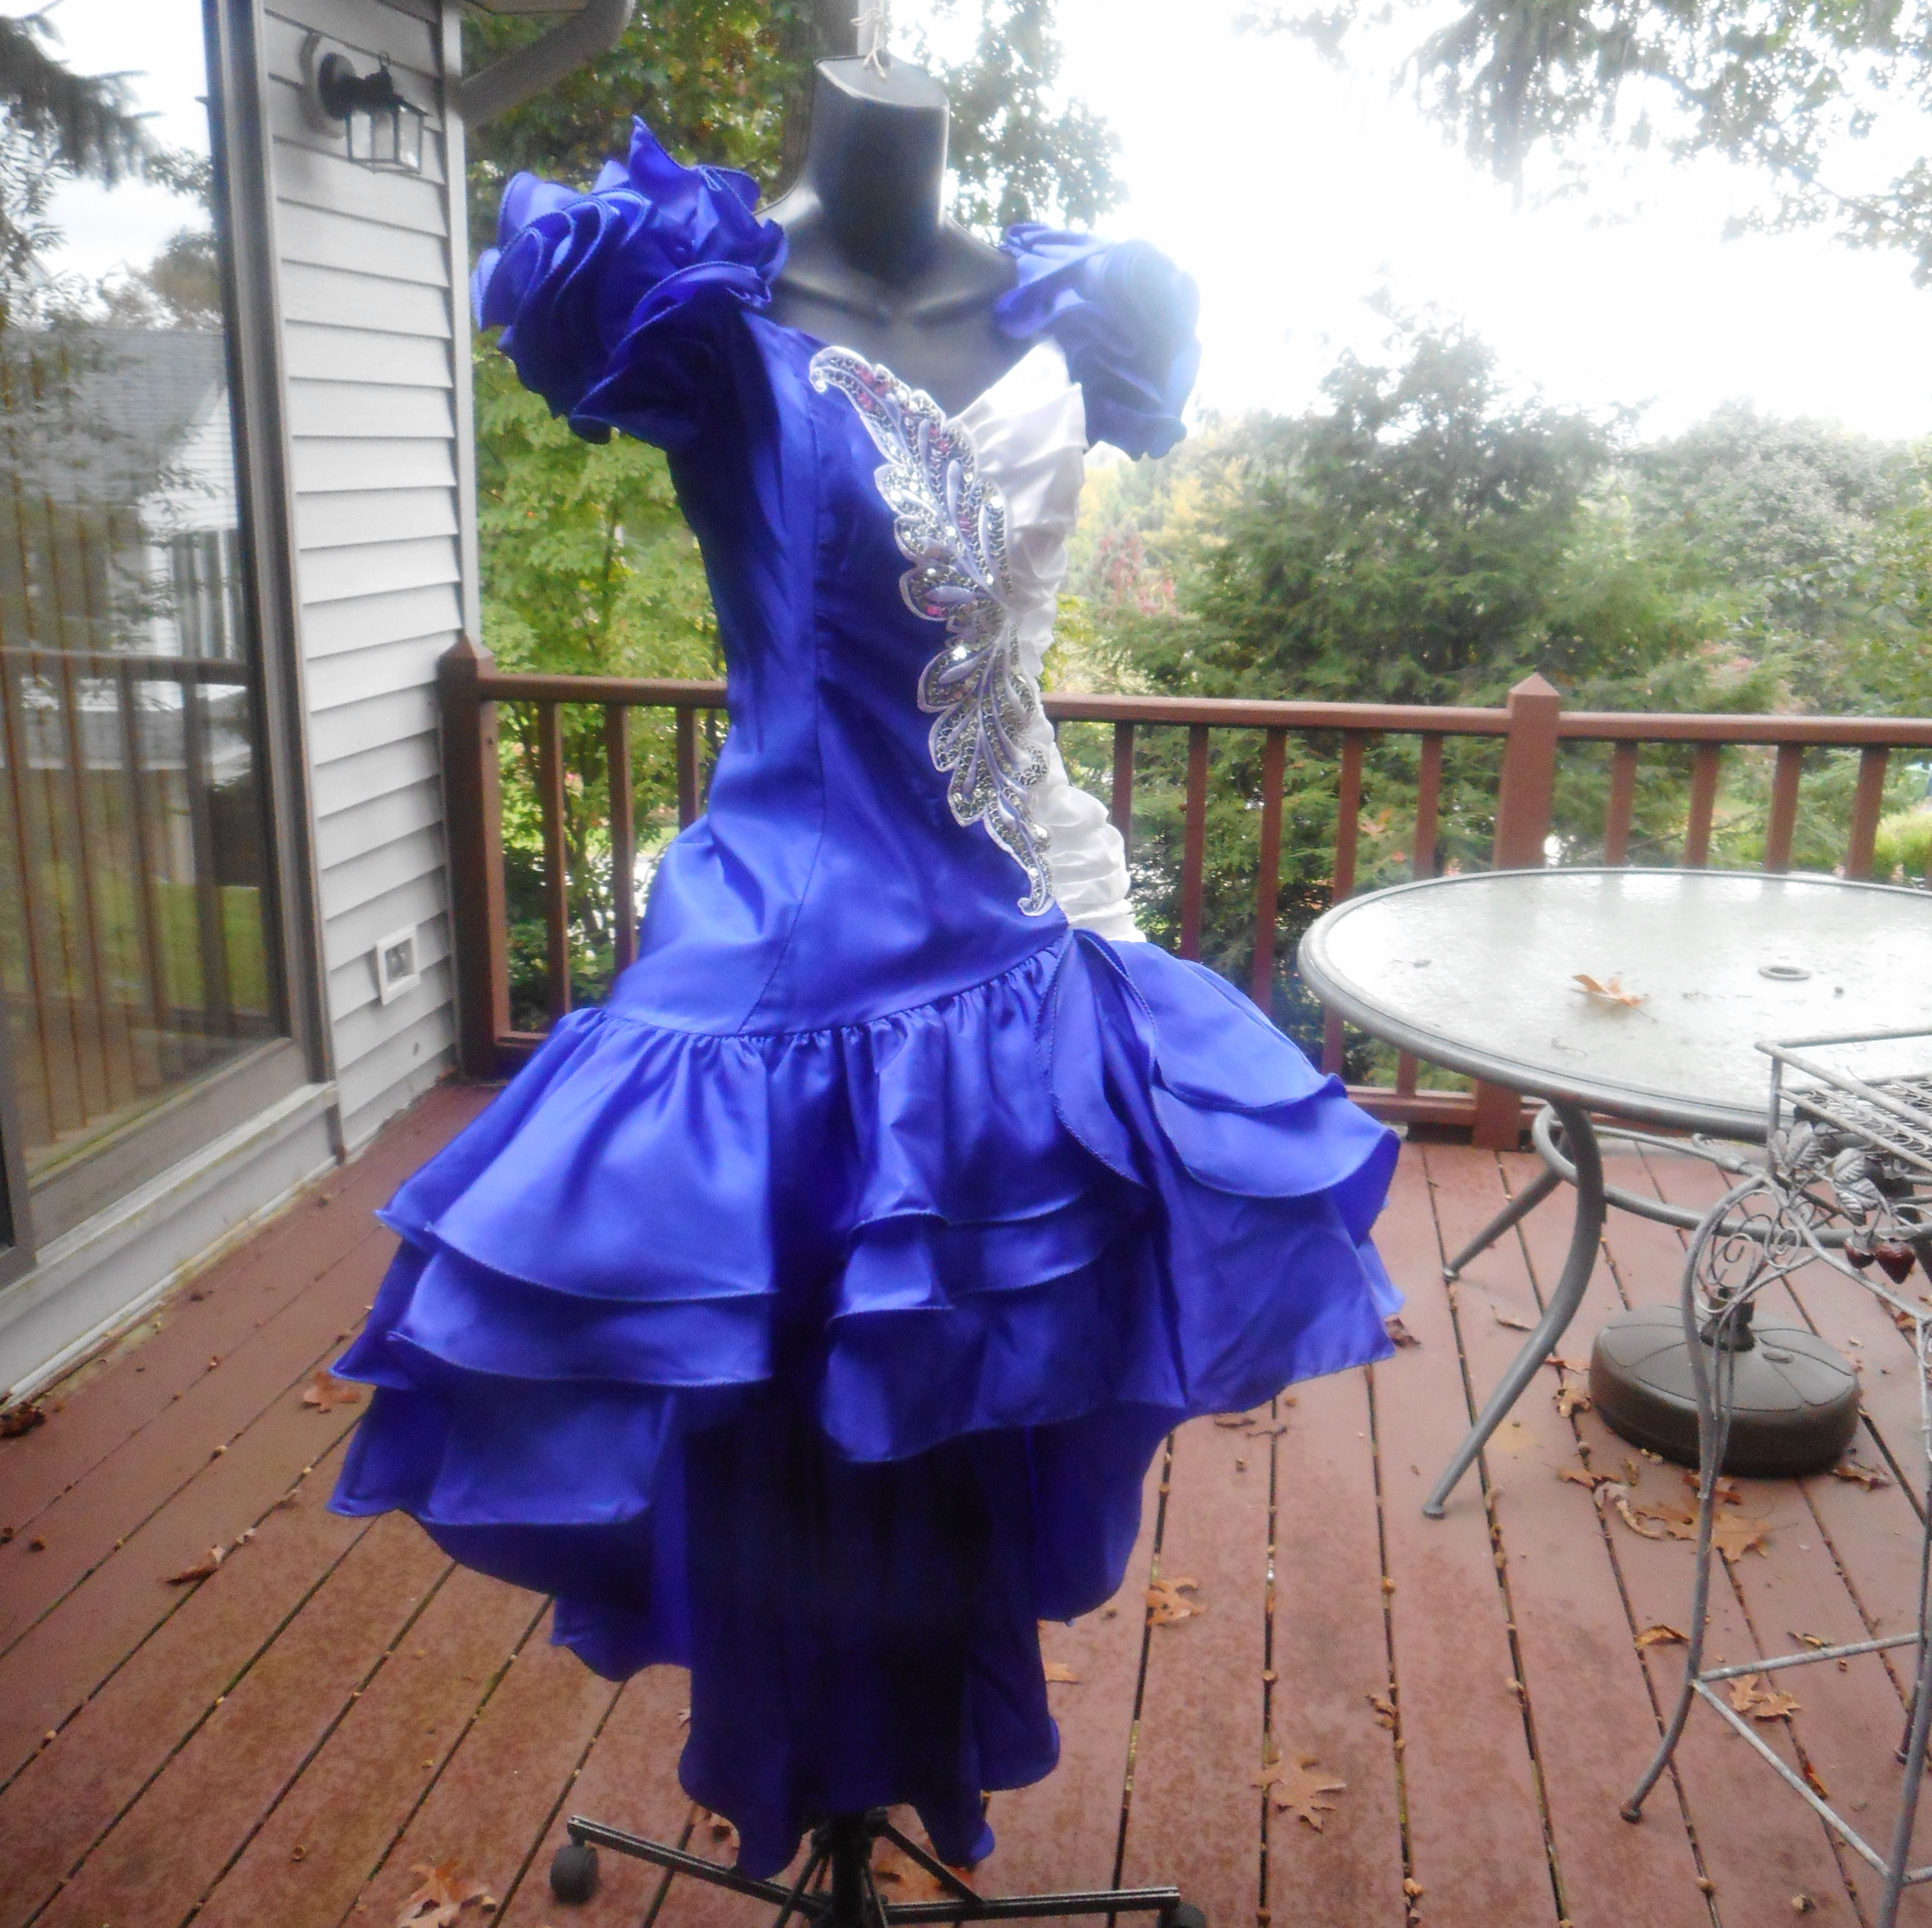 Available For Rent On Facebook On Vintage 80s Prom Dresses 80s Prom Dress Dresses 1980s Prom Dress [ 3856 x 3864 Pixel ]